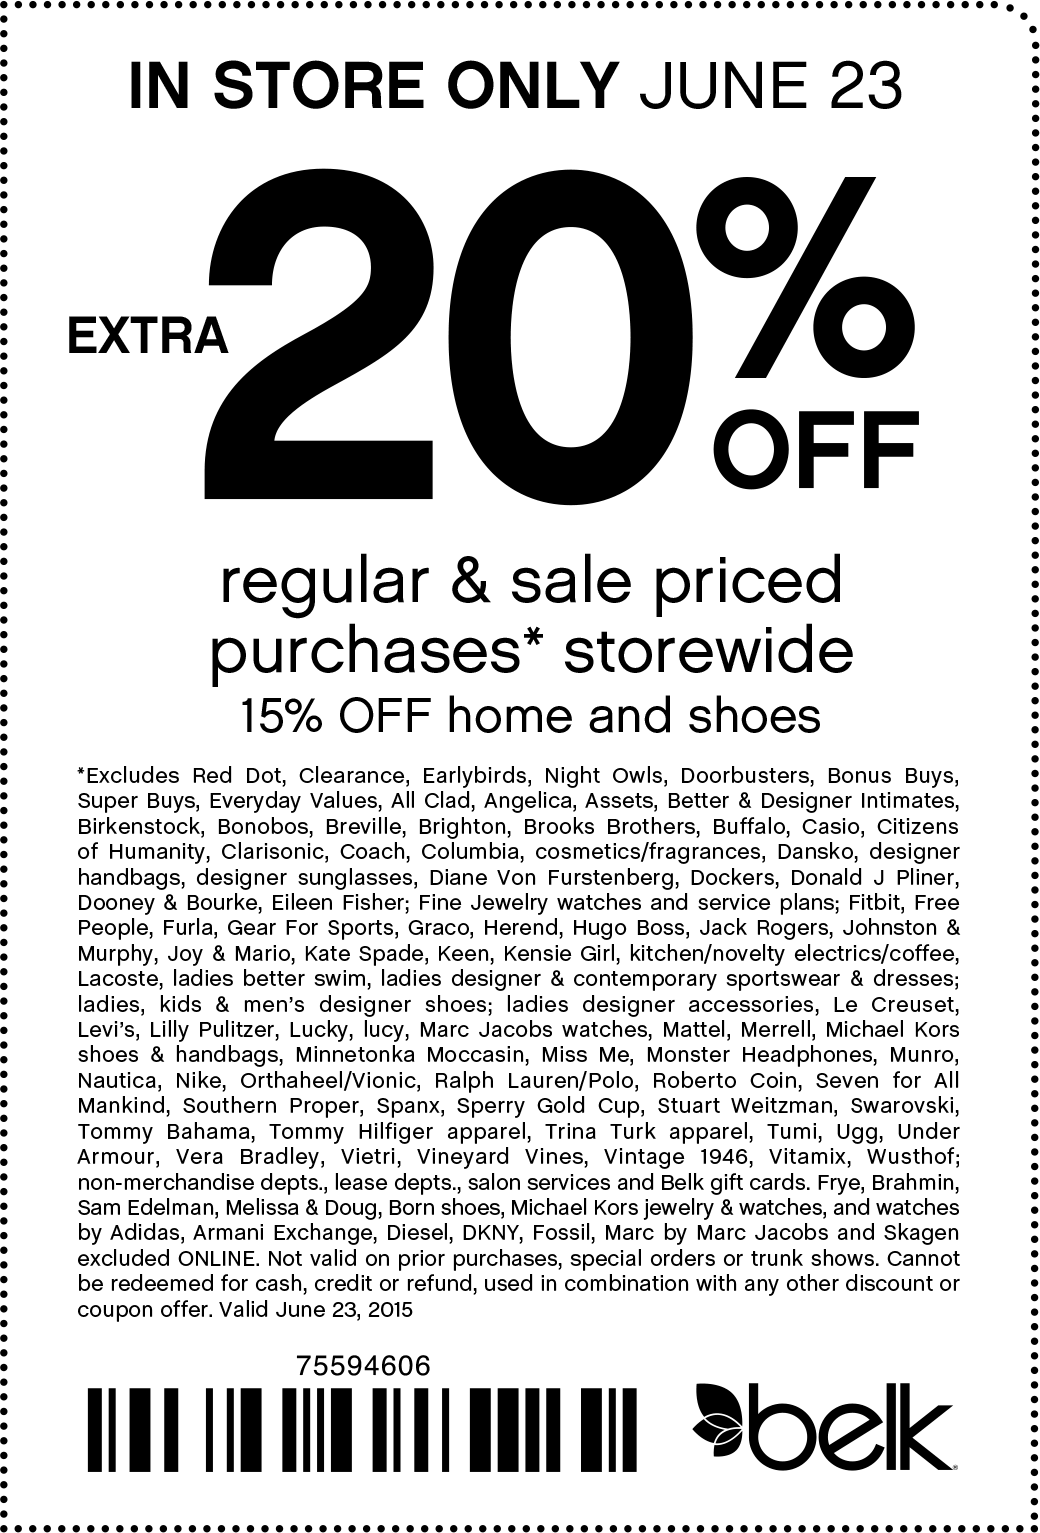 30 off kmart coupon code september 2017 labor day sale